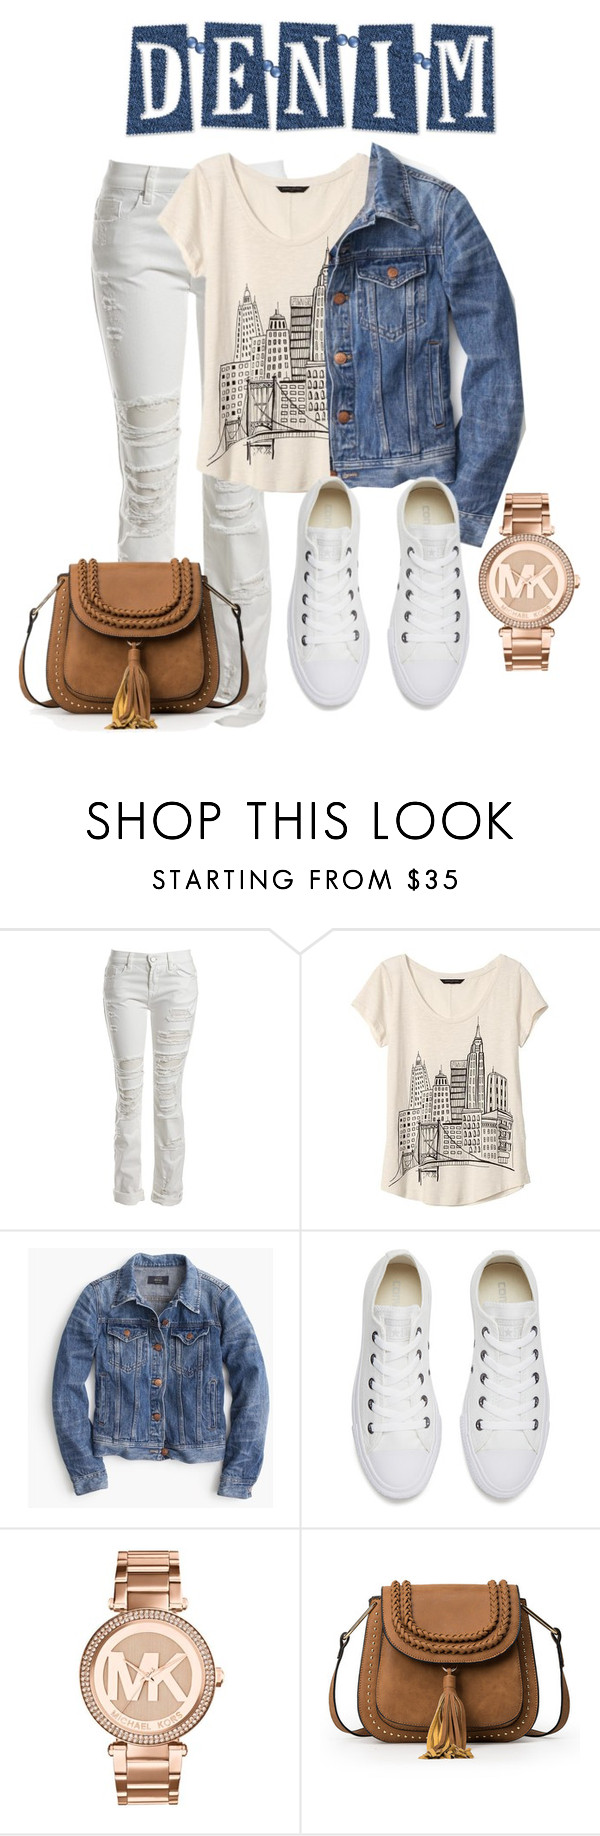 """""""Denim Jacket"""" by arimagedesign ❤ liked on Polyvore featuring Sans Souci, Banana Republic, J.Crew, Converse and Michael Kors"""